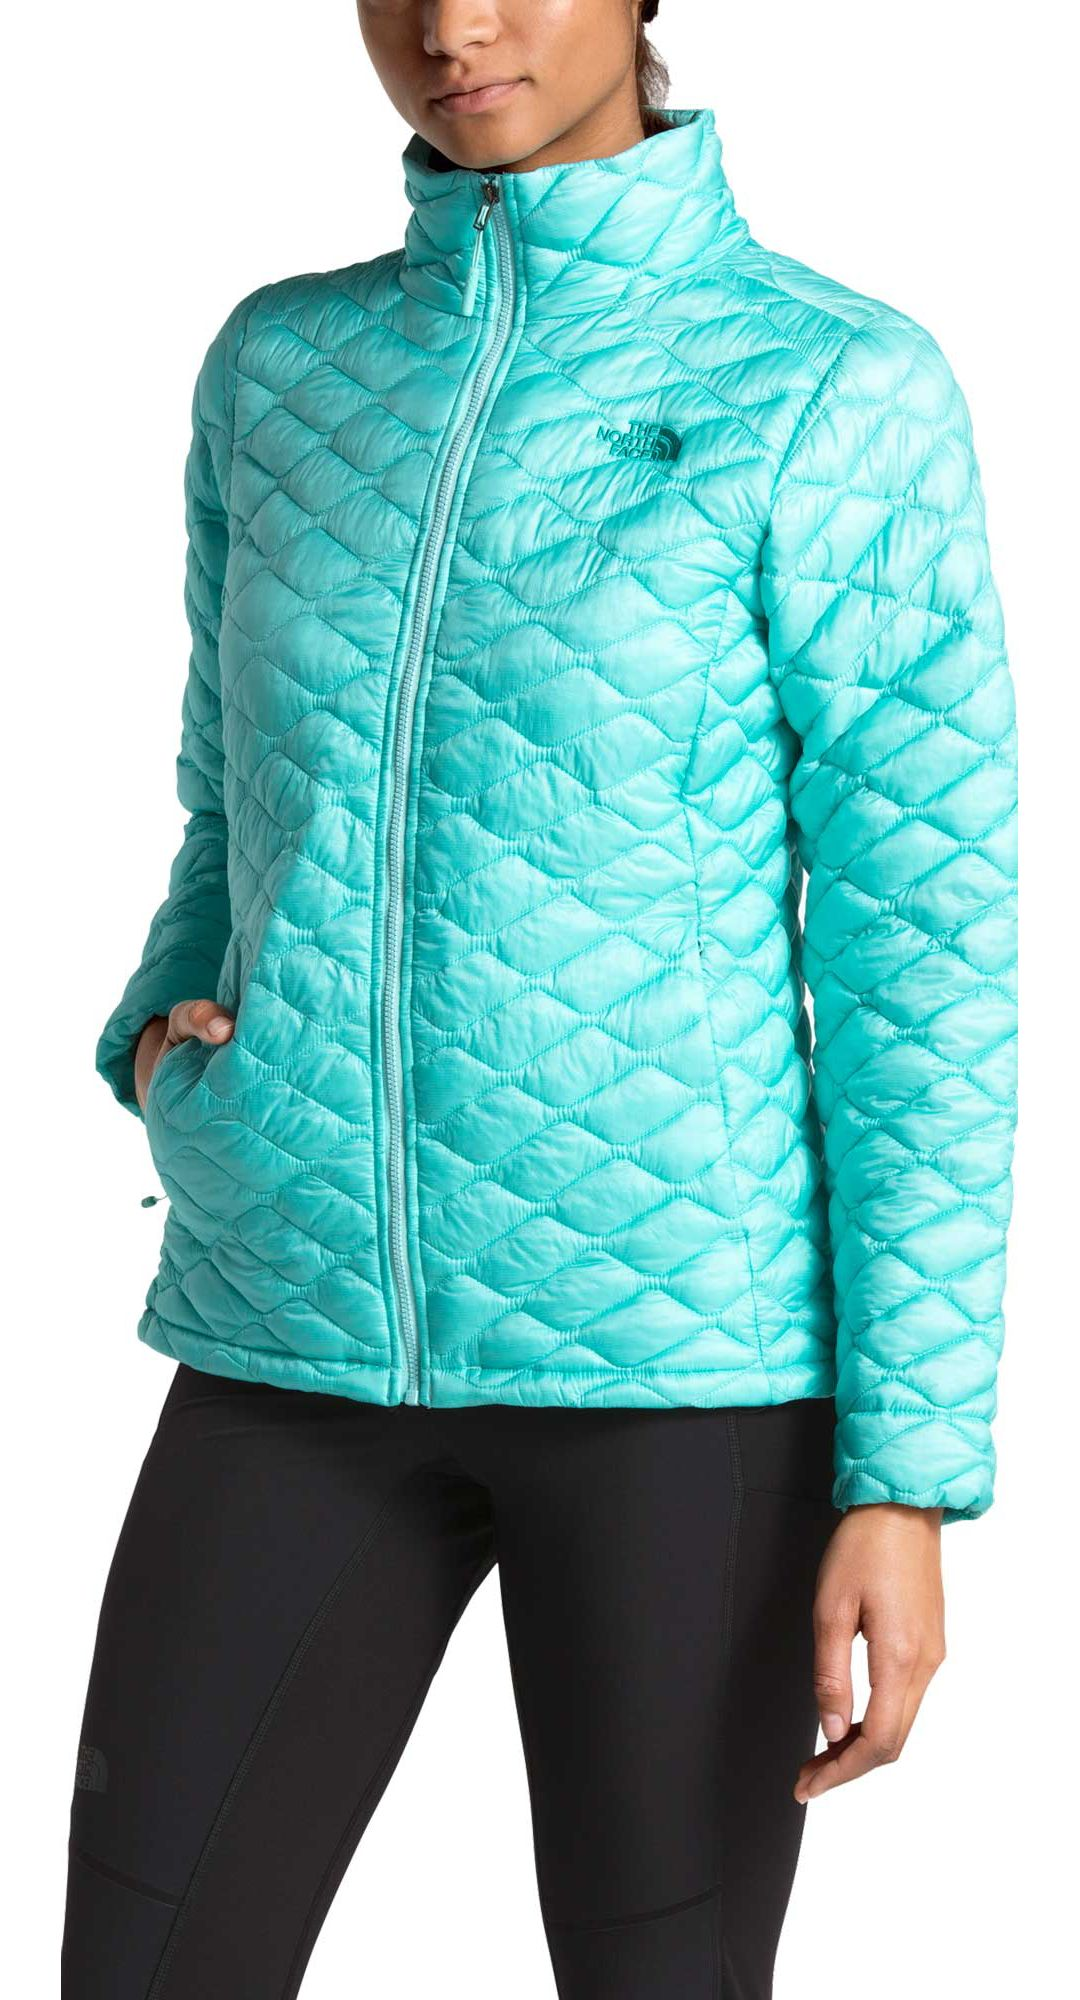 f437d4b29522b The North Face Women's ThermoBall Jacket